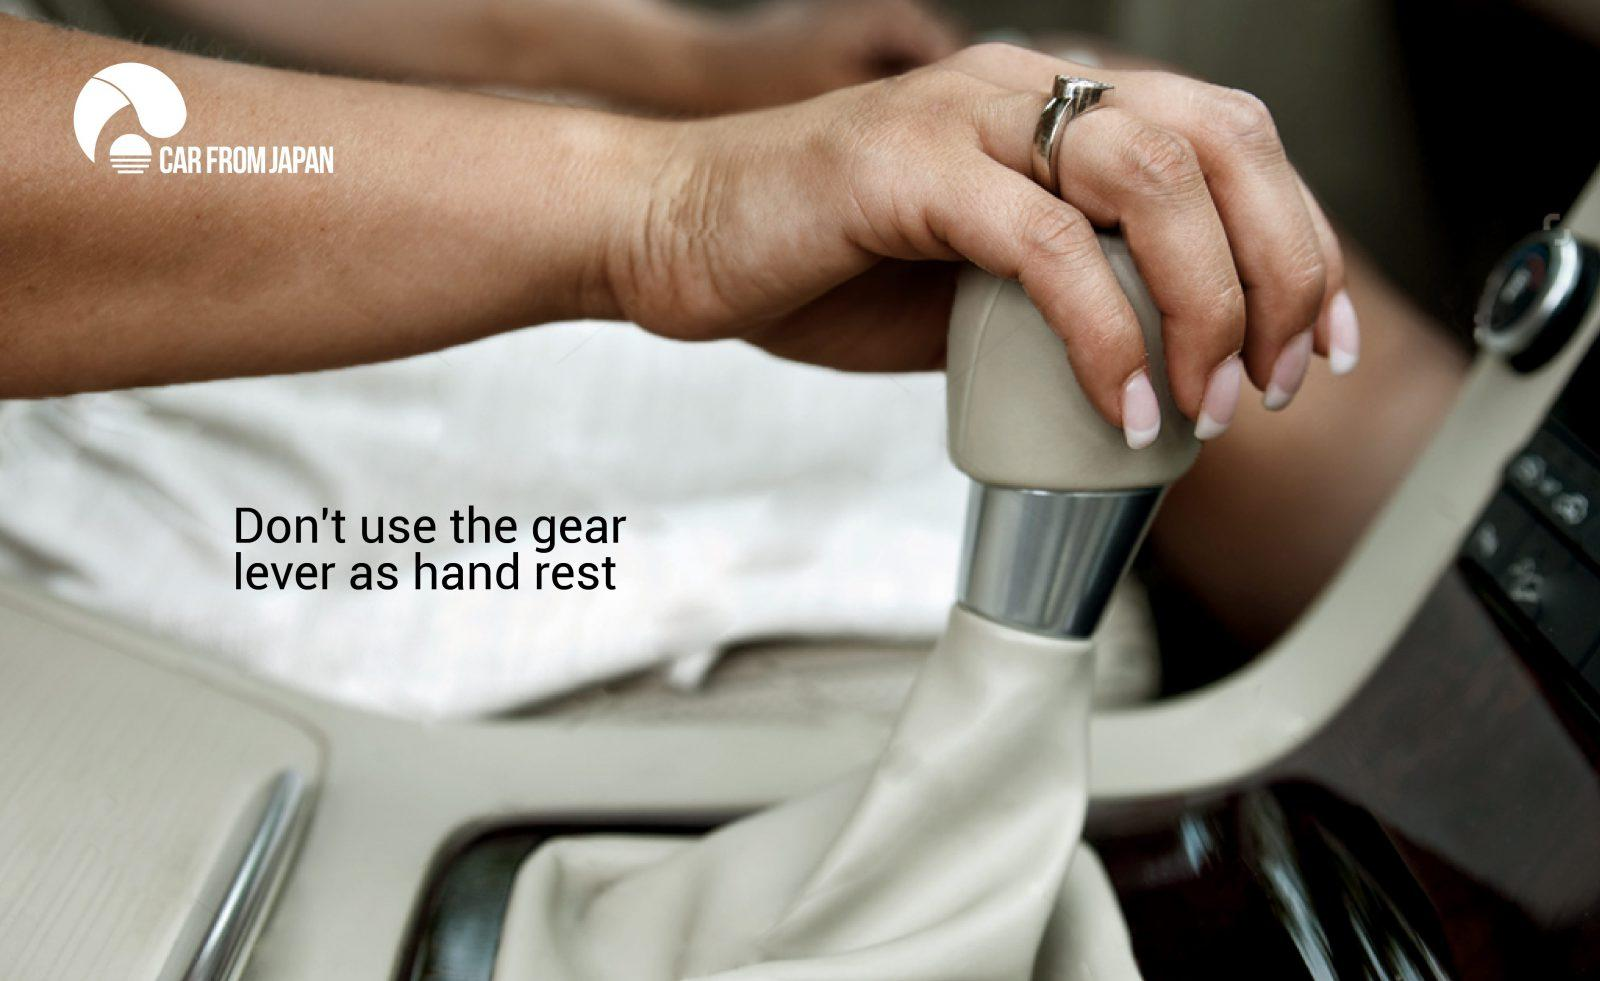 Don't use the gear lever as hand rest